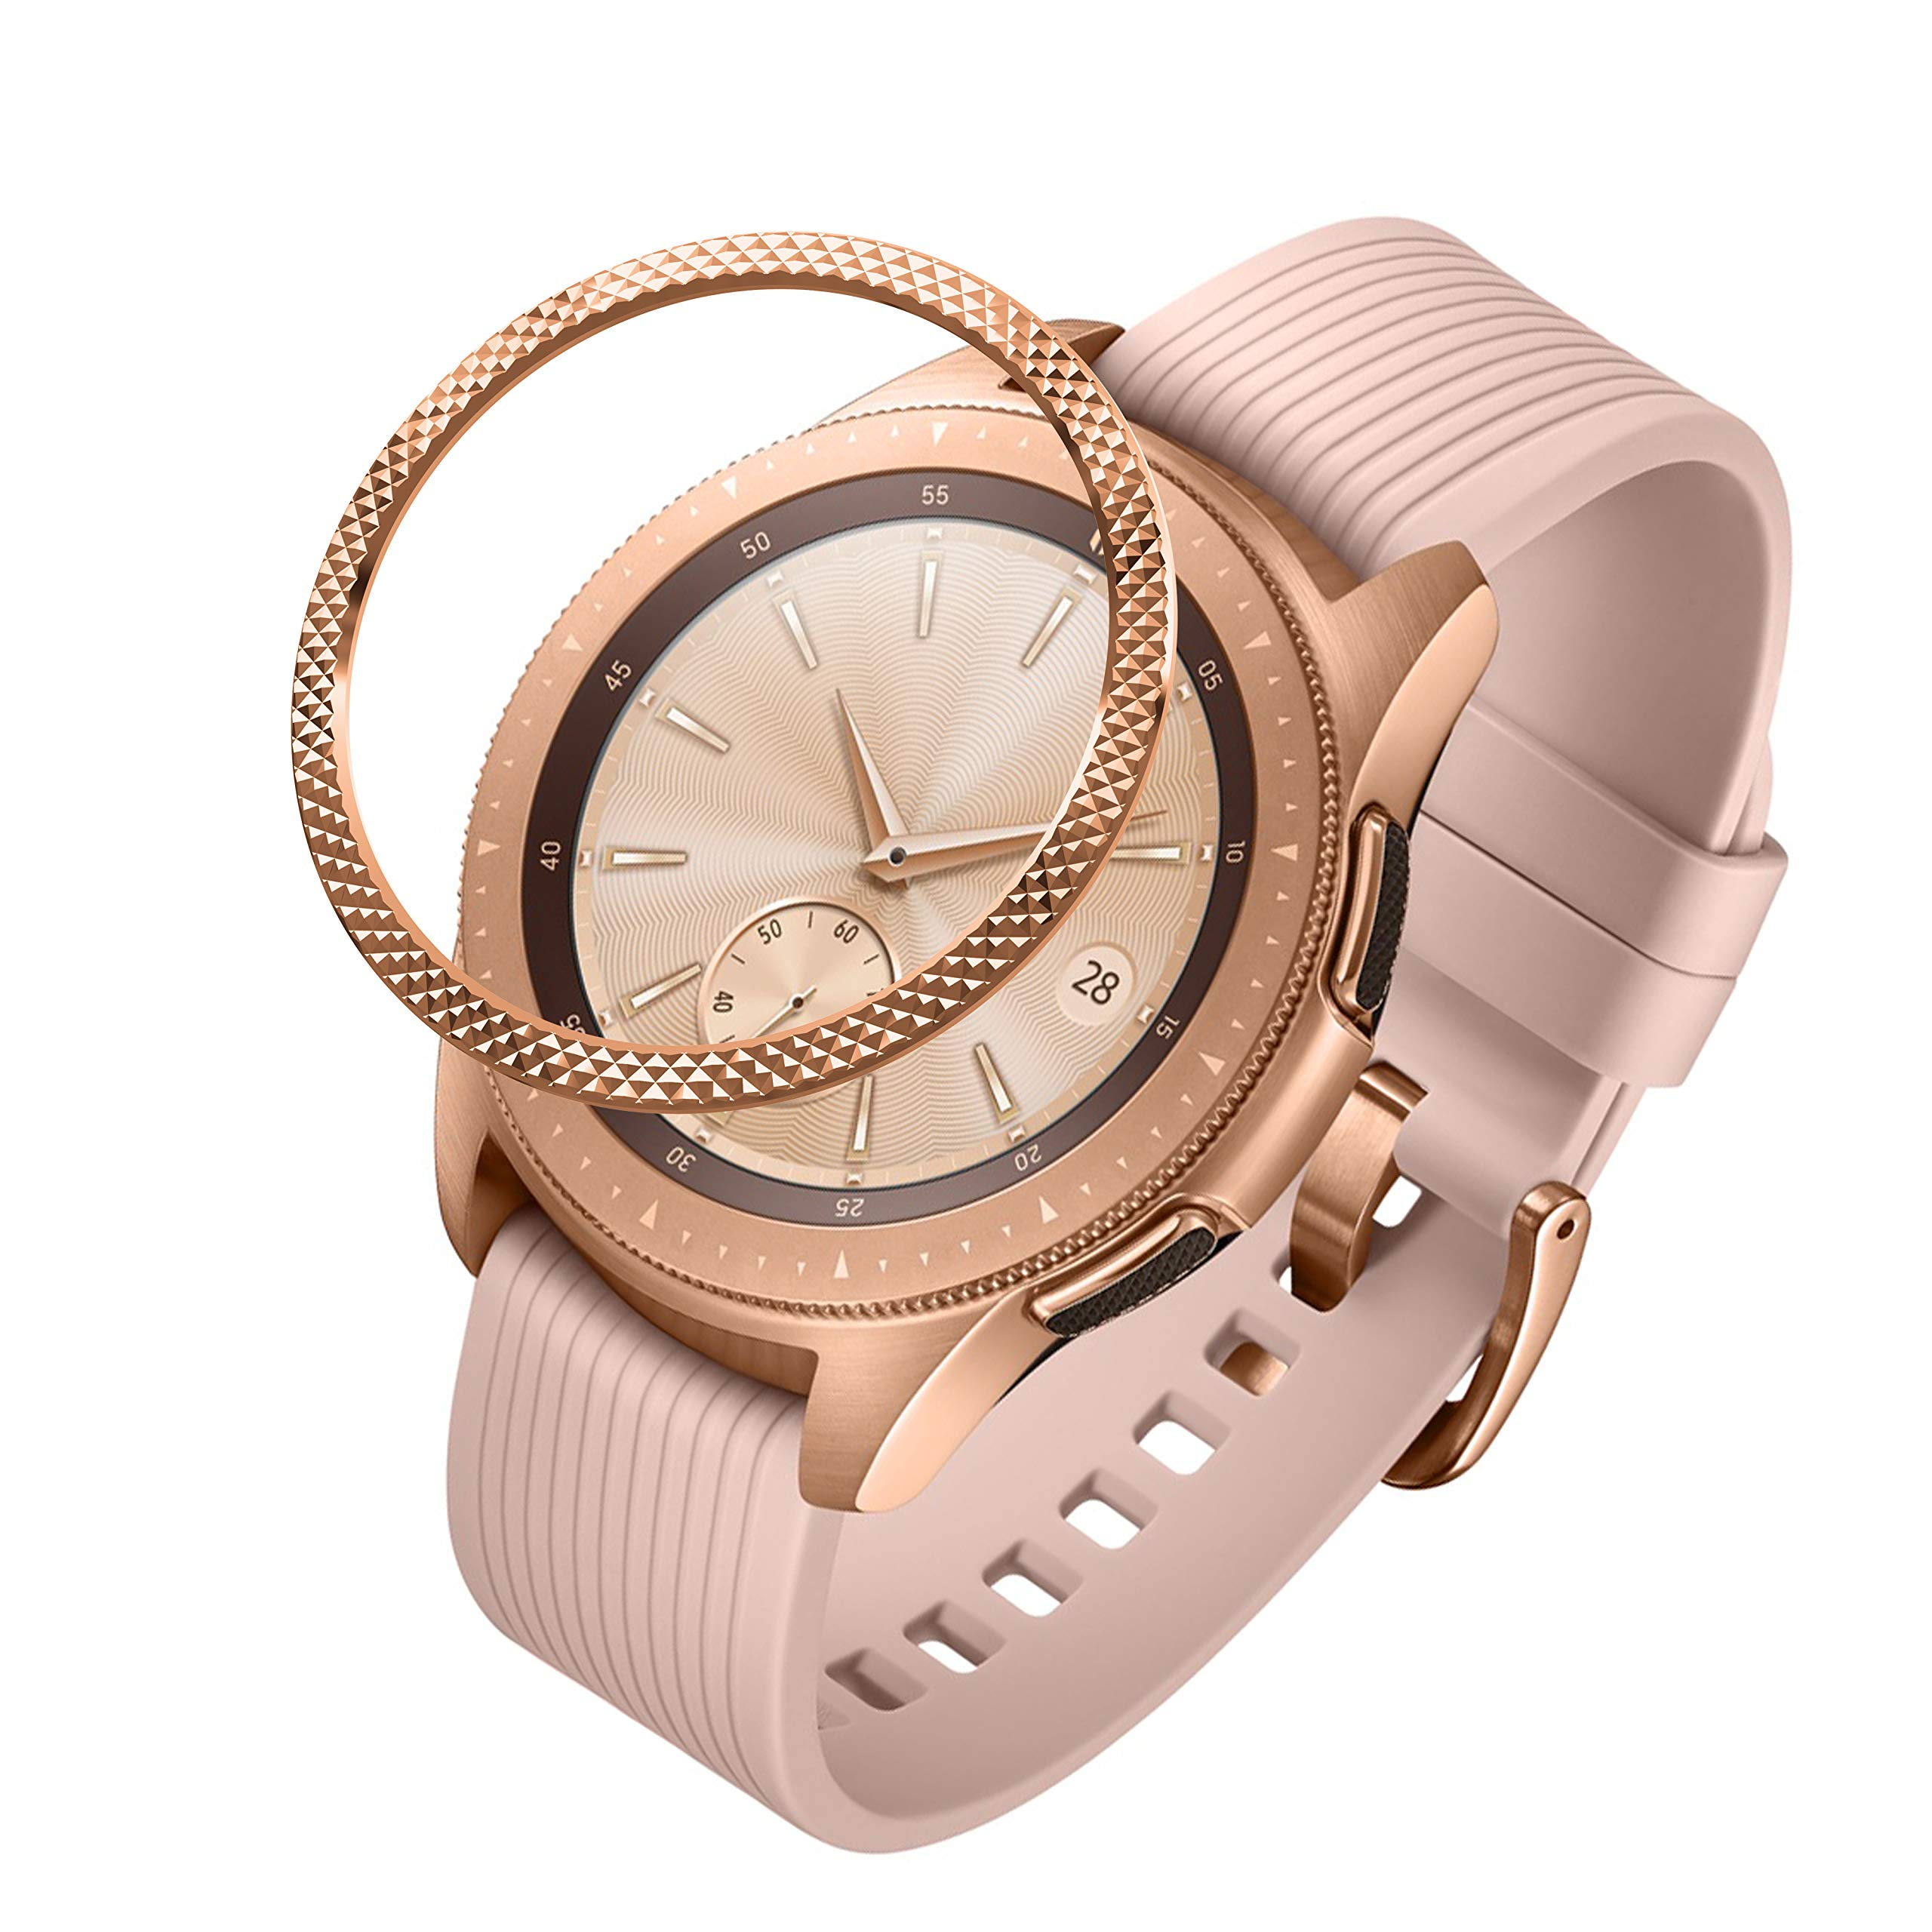 GELISHI Stainless Steel Bezel Ring Compatiable Galaxy Watch 42mm/Gear Sport, Fashion Bezel Ring Adhesive Cover Anti Scratch & Collision Protector for Galaxy Watch Accessory - Rose Gold by GELISHI